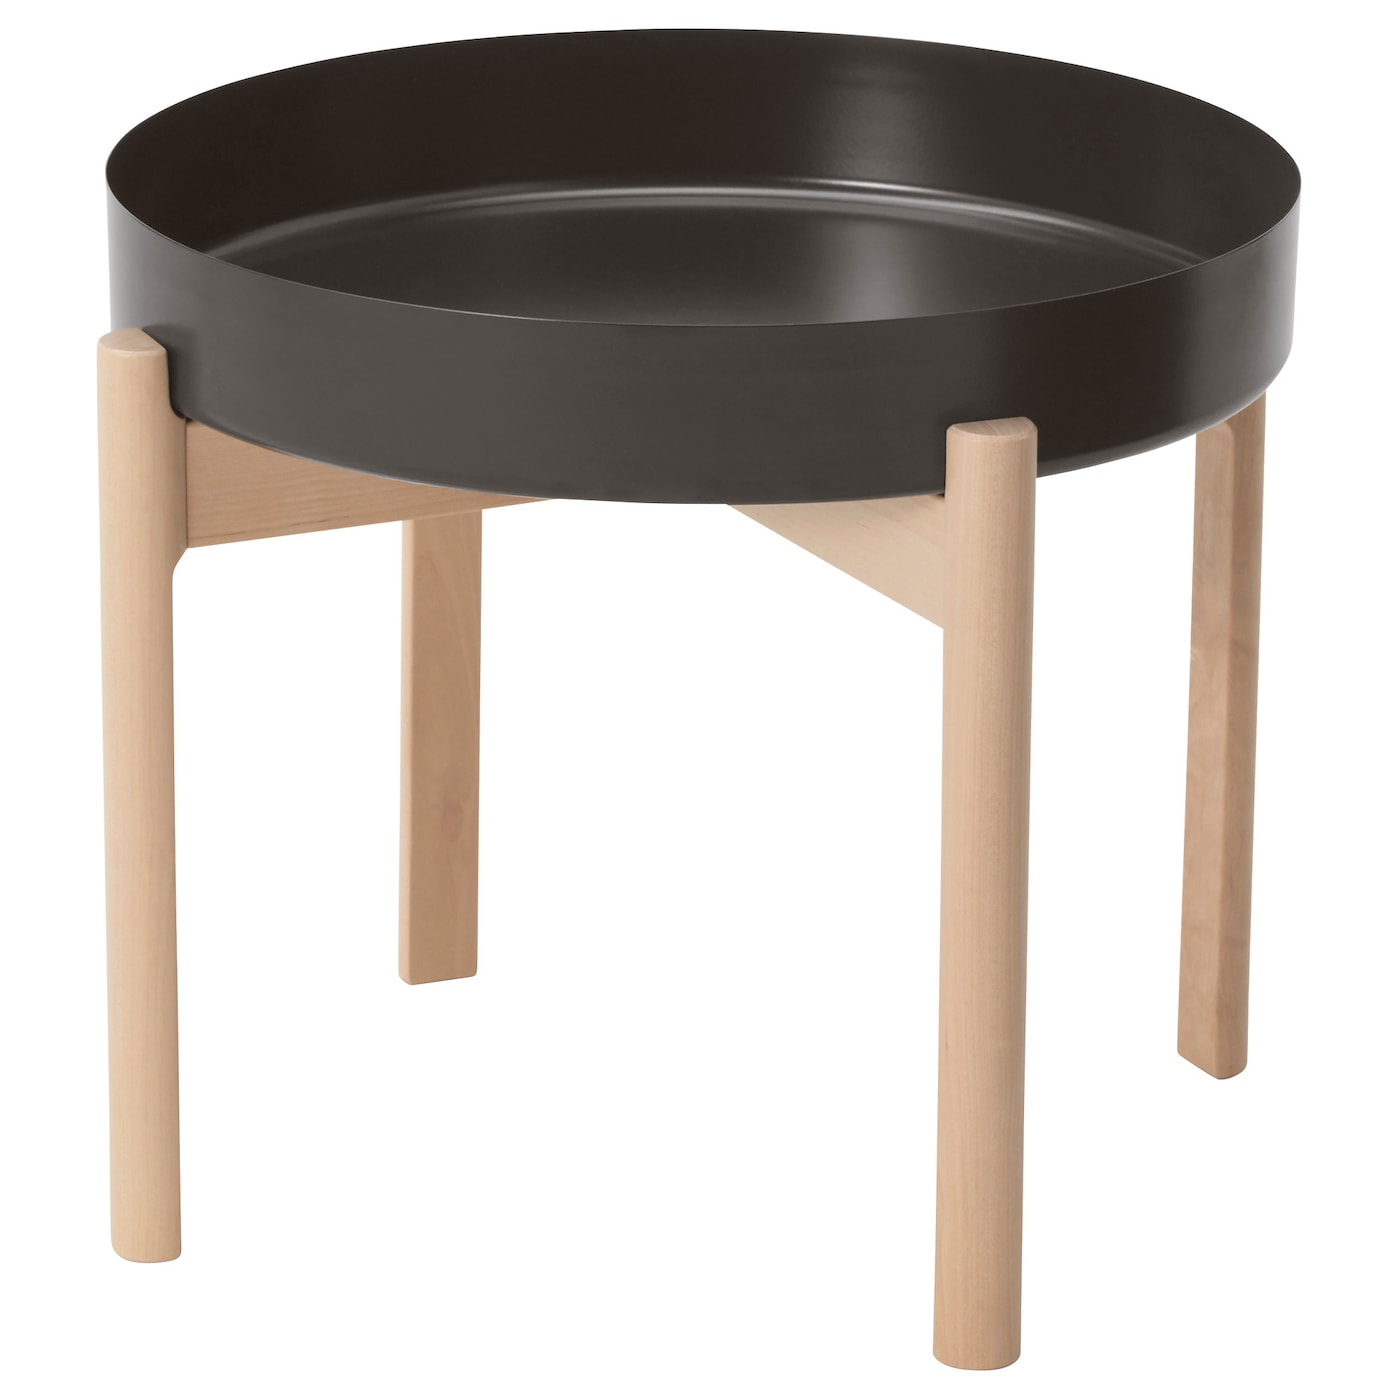 Ypperlig coffee table dark grey birch 50 cm ikea - Table basse modulable ikea ...